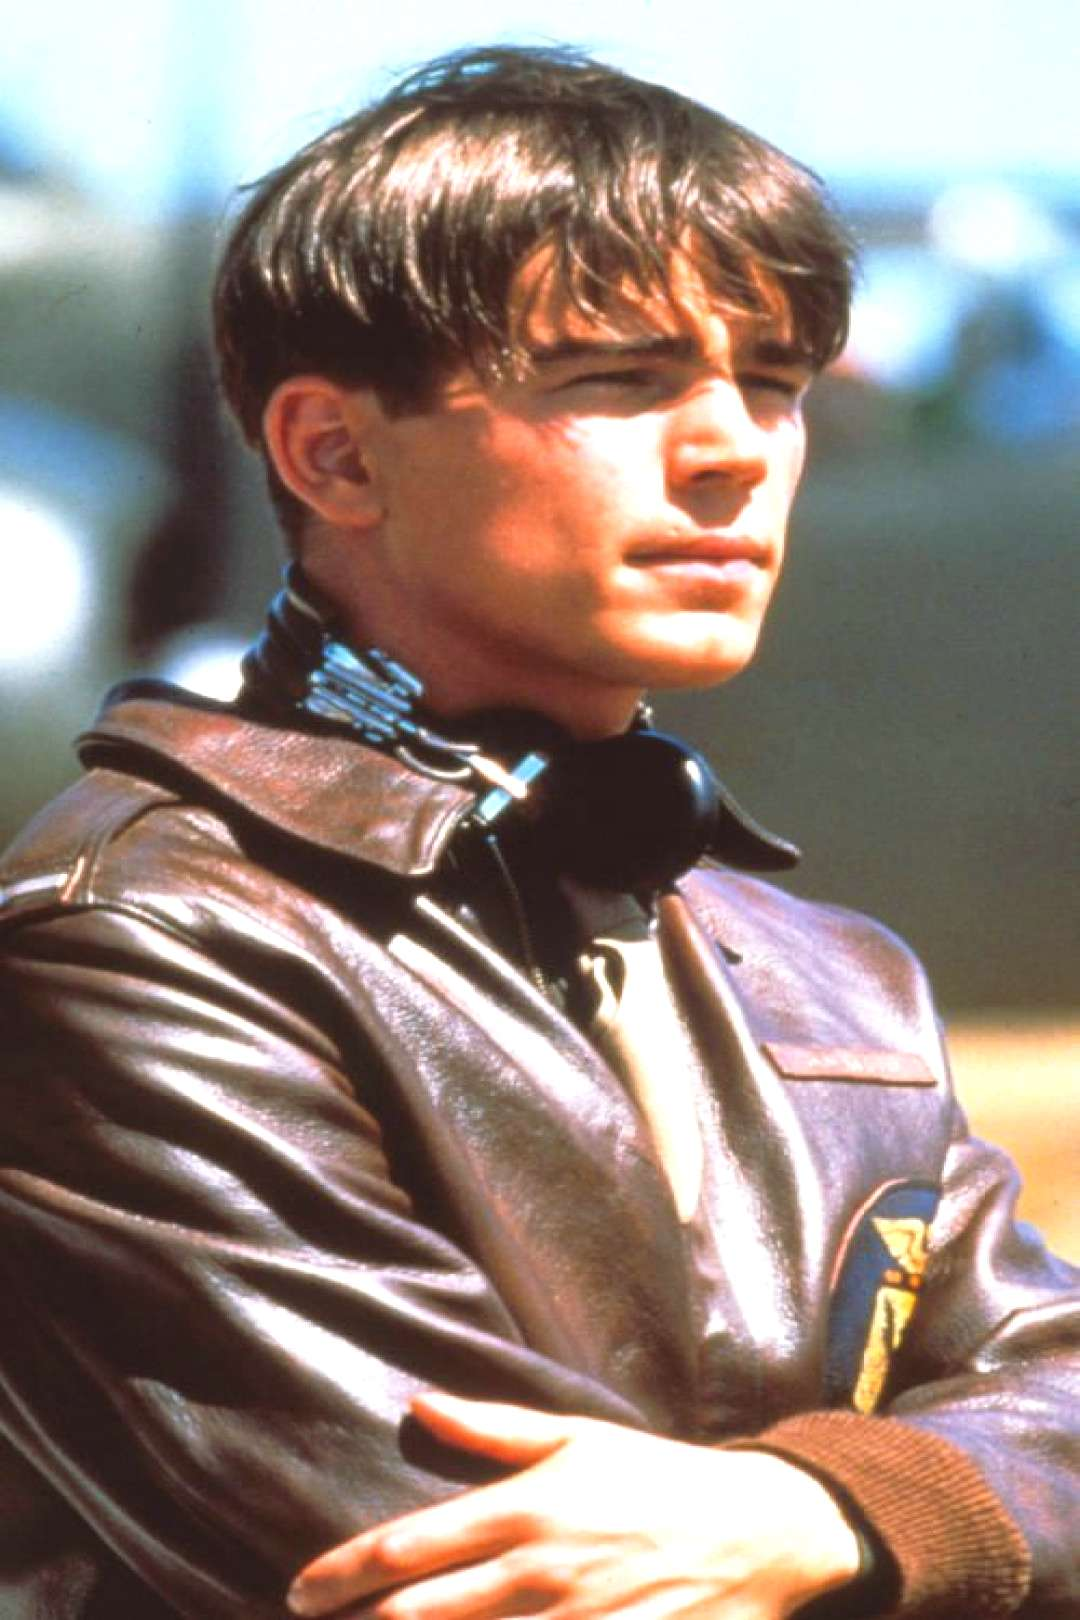 Josh Hartnett was Hollywood's No. 1 heartthrob. Get the deets on the stud 15 years after 'Pearl Har